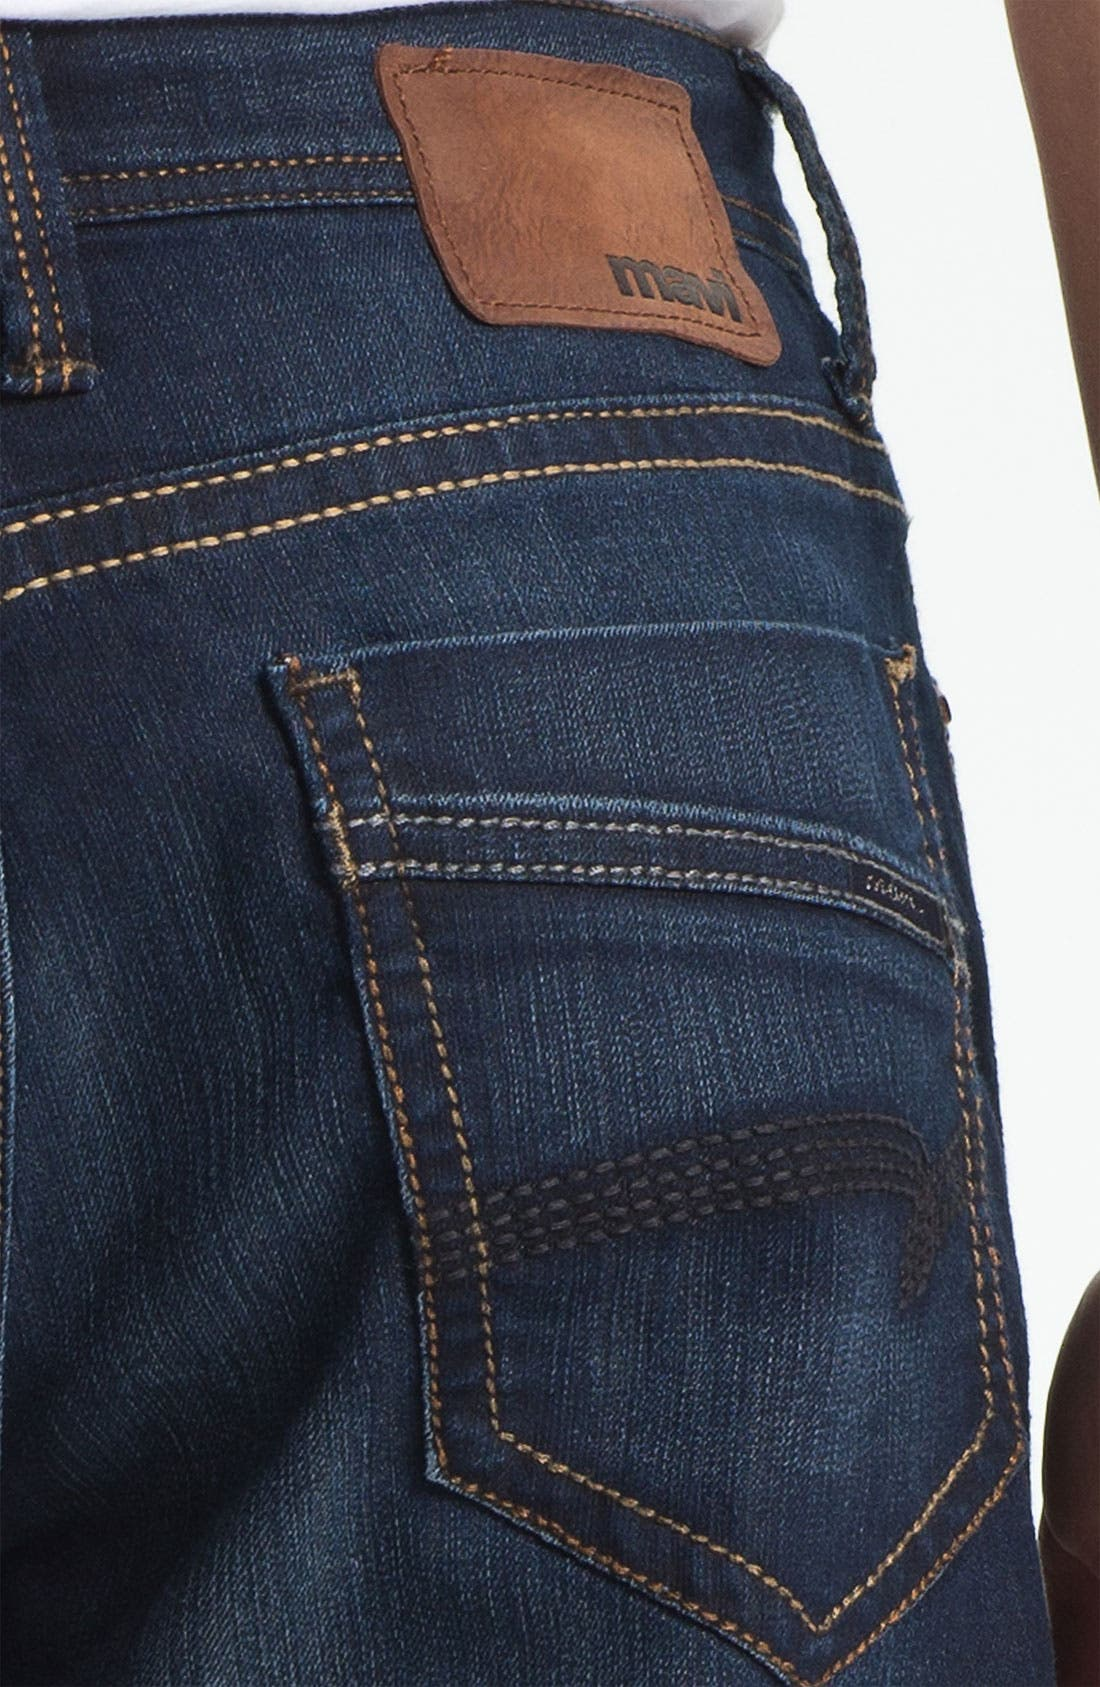 Alternate Image 4  - Mavi Jeans 'Matt' Relaxed Straight Leg Jeans (Deep Eastwood)